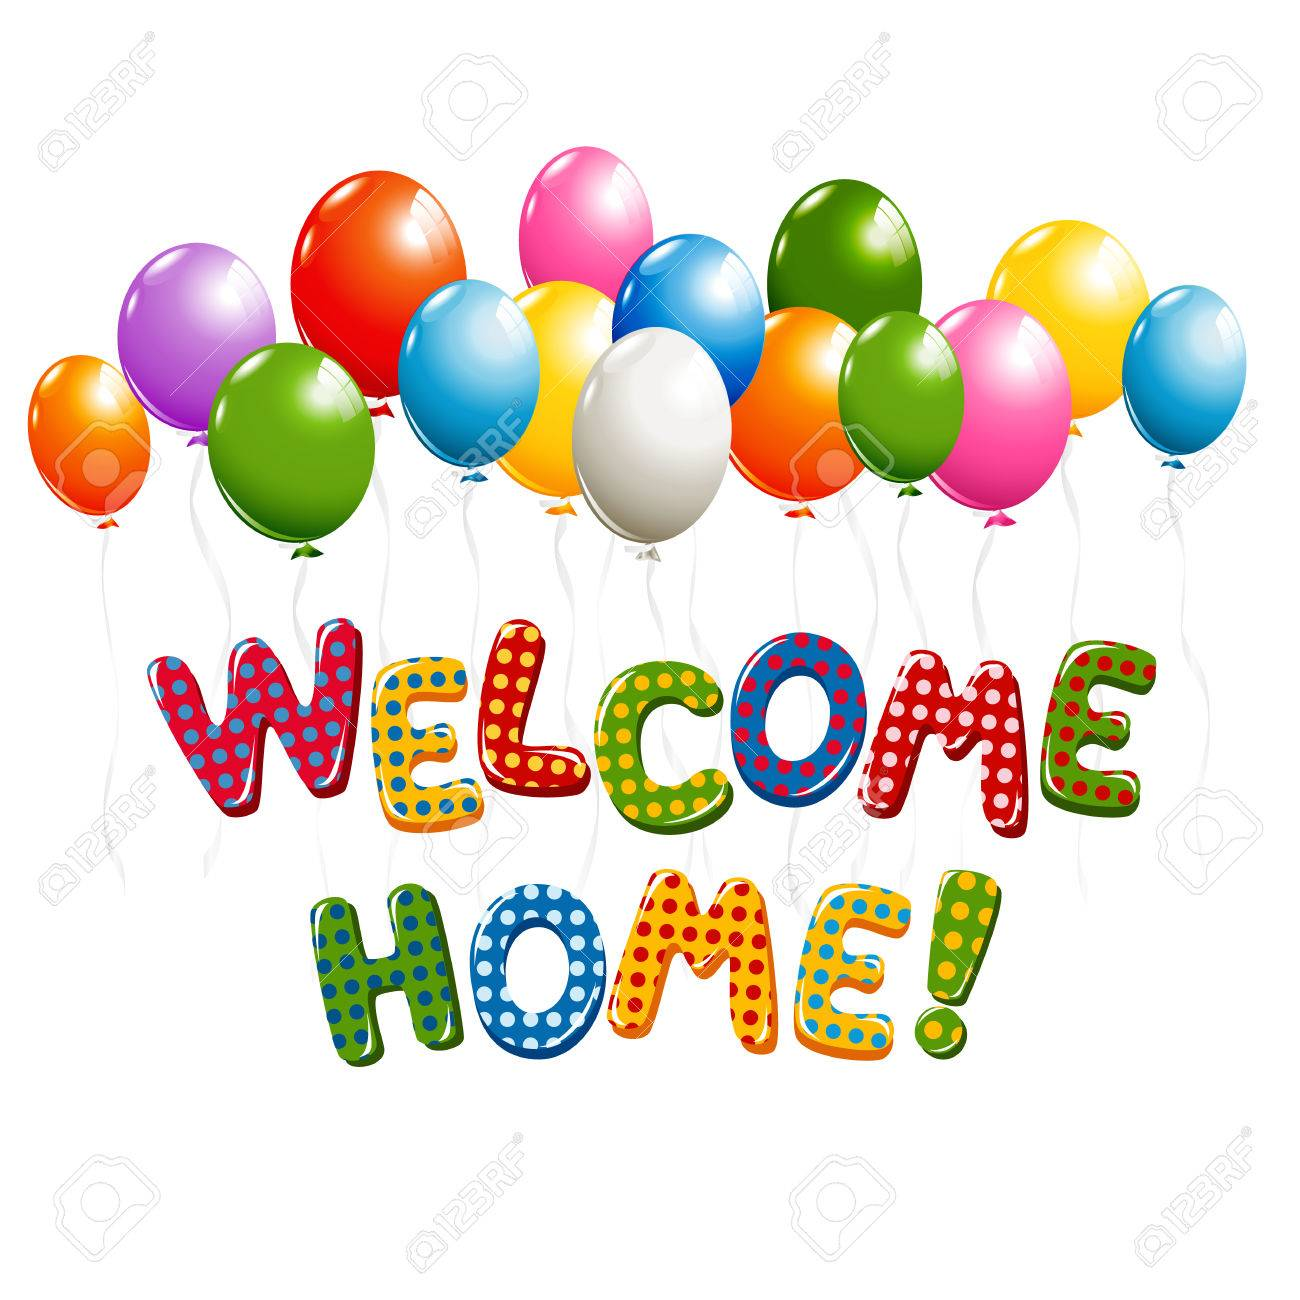 Welcome home banner template eliolera welcome home banner template eliolera pronofoot35fo Image collections